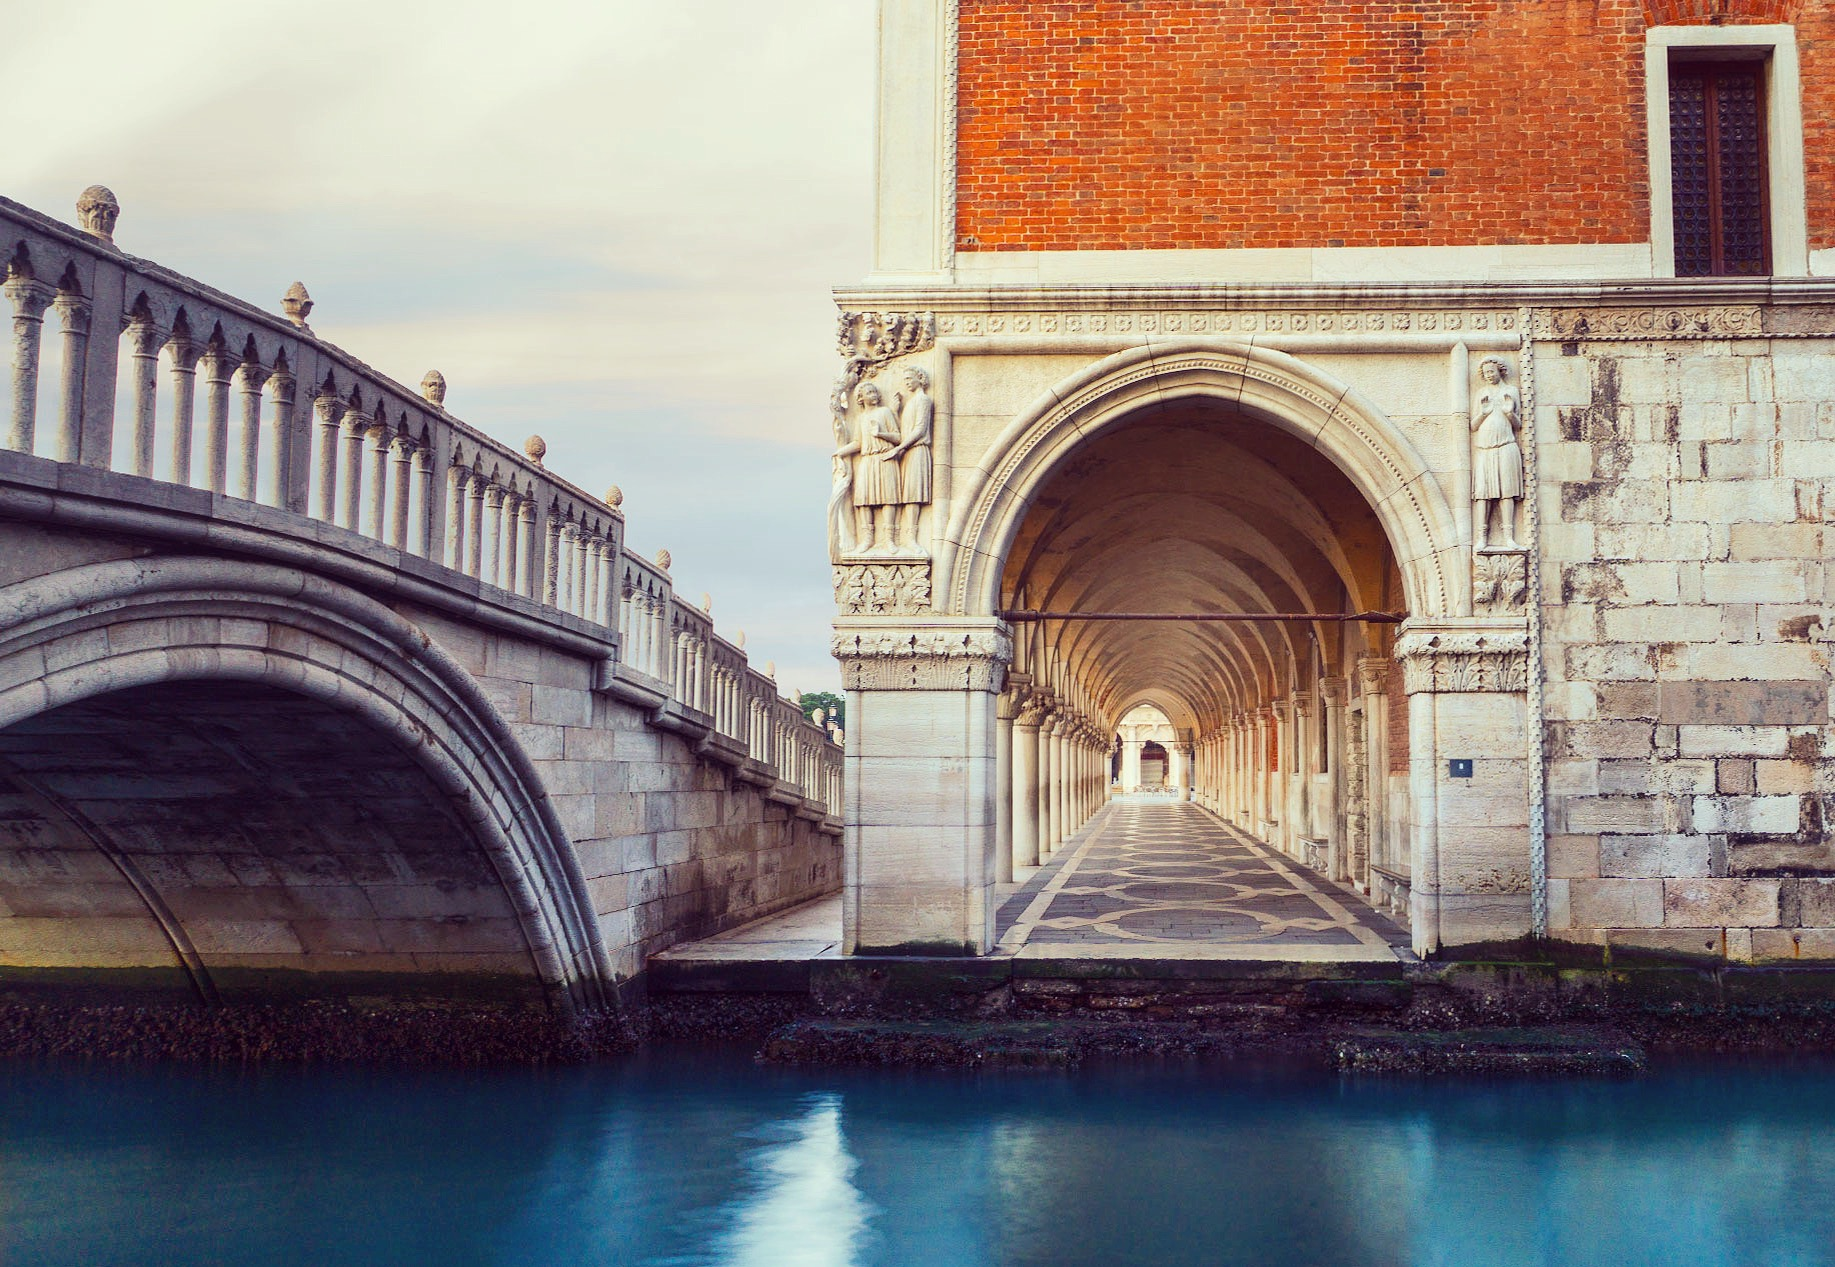 Arch at the Doge's Palace